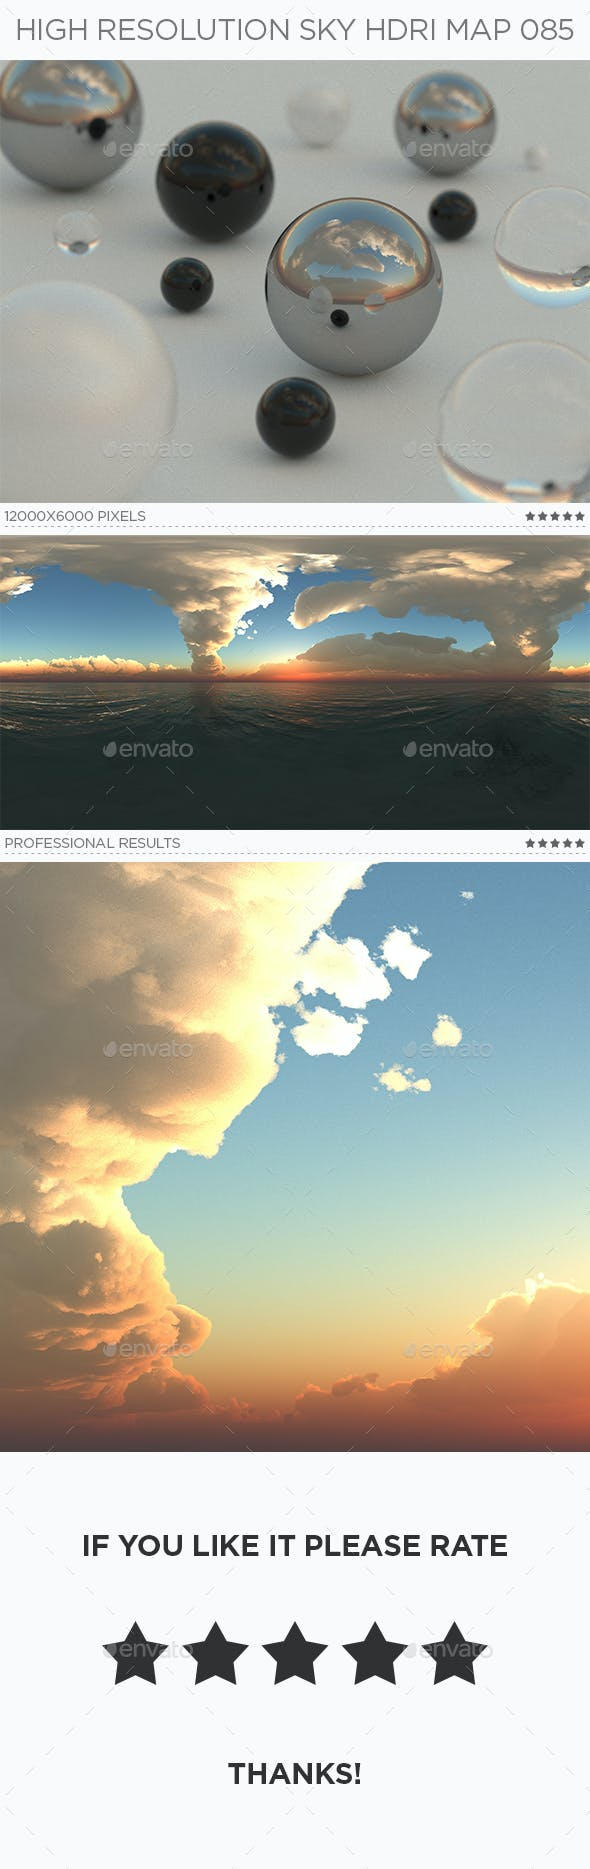 High Resolution Sky HDRi Map 085 - 3DOcean Item for Sale